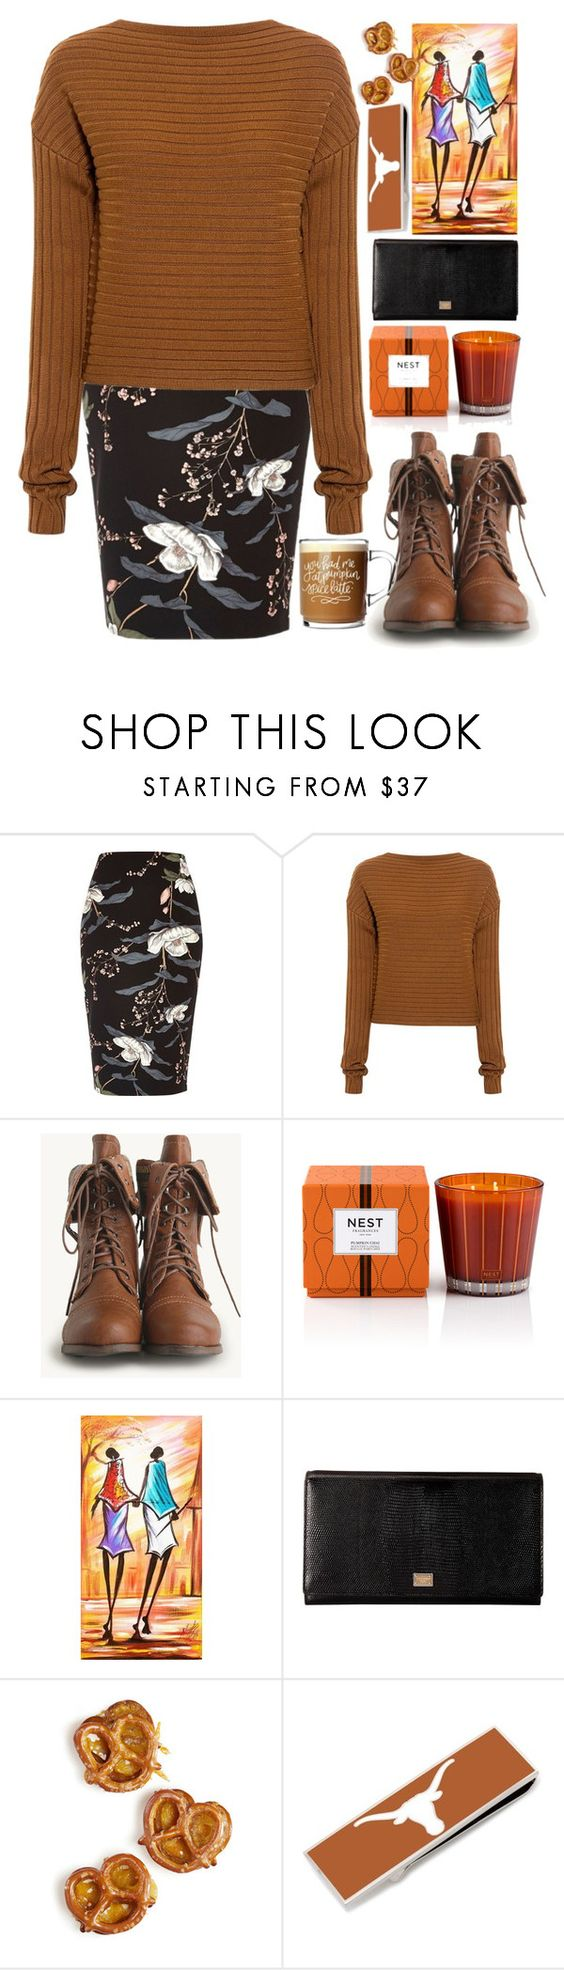 """Autumn flowers"" by erohina-d ❤ liked on Polyvore featuring River Island, TIBI, Nest Fragrances, NOVICA, Dolce&Gabbana and Cufflinks, Inc."